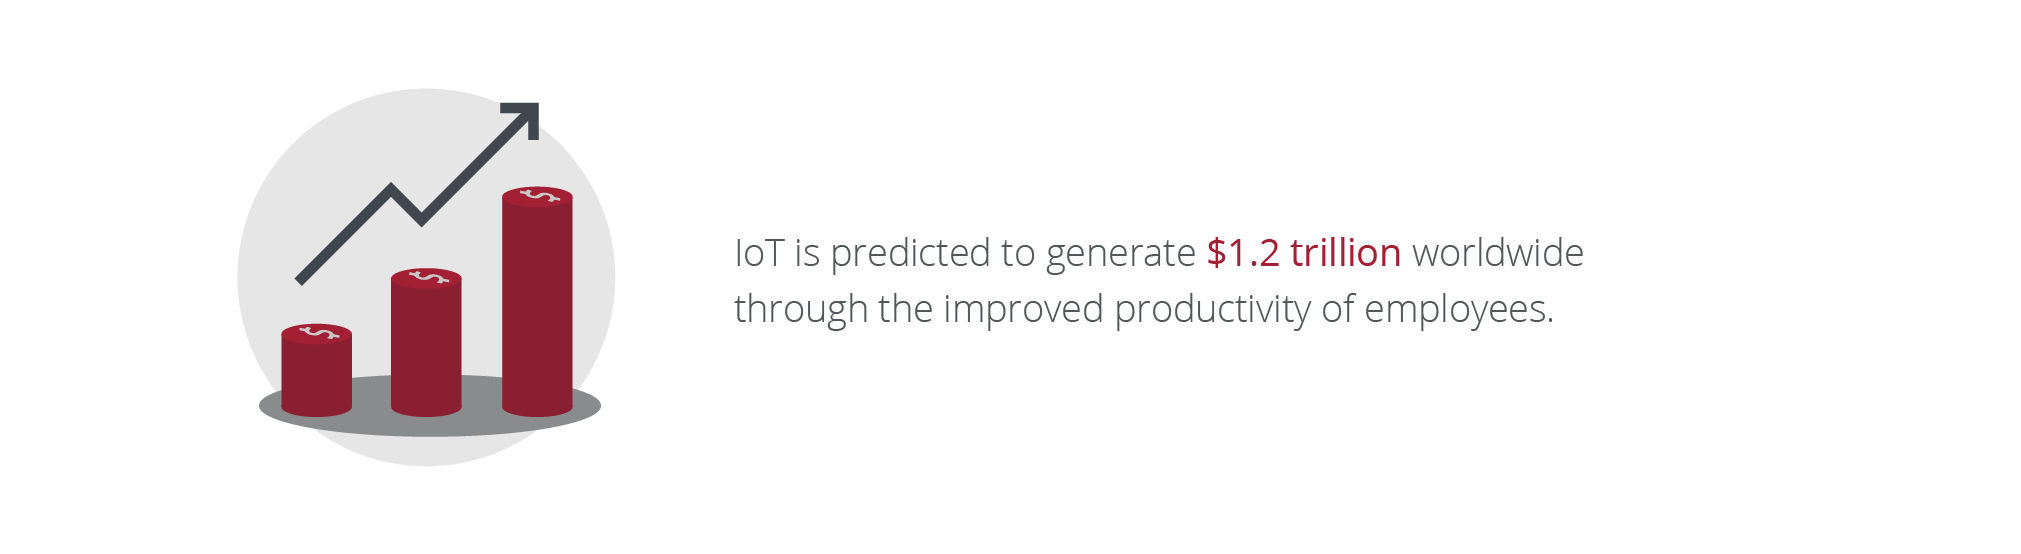 how iot increases productivity